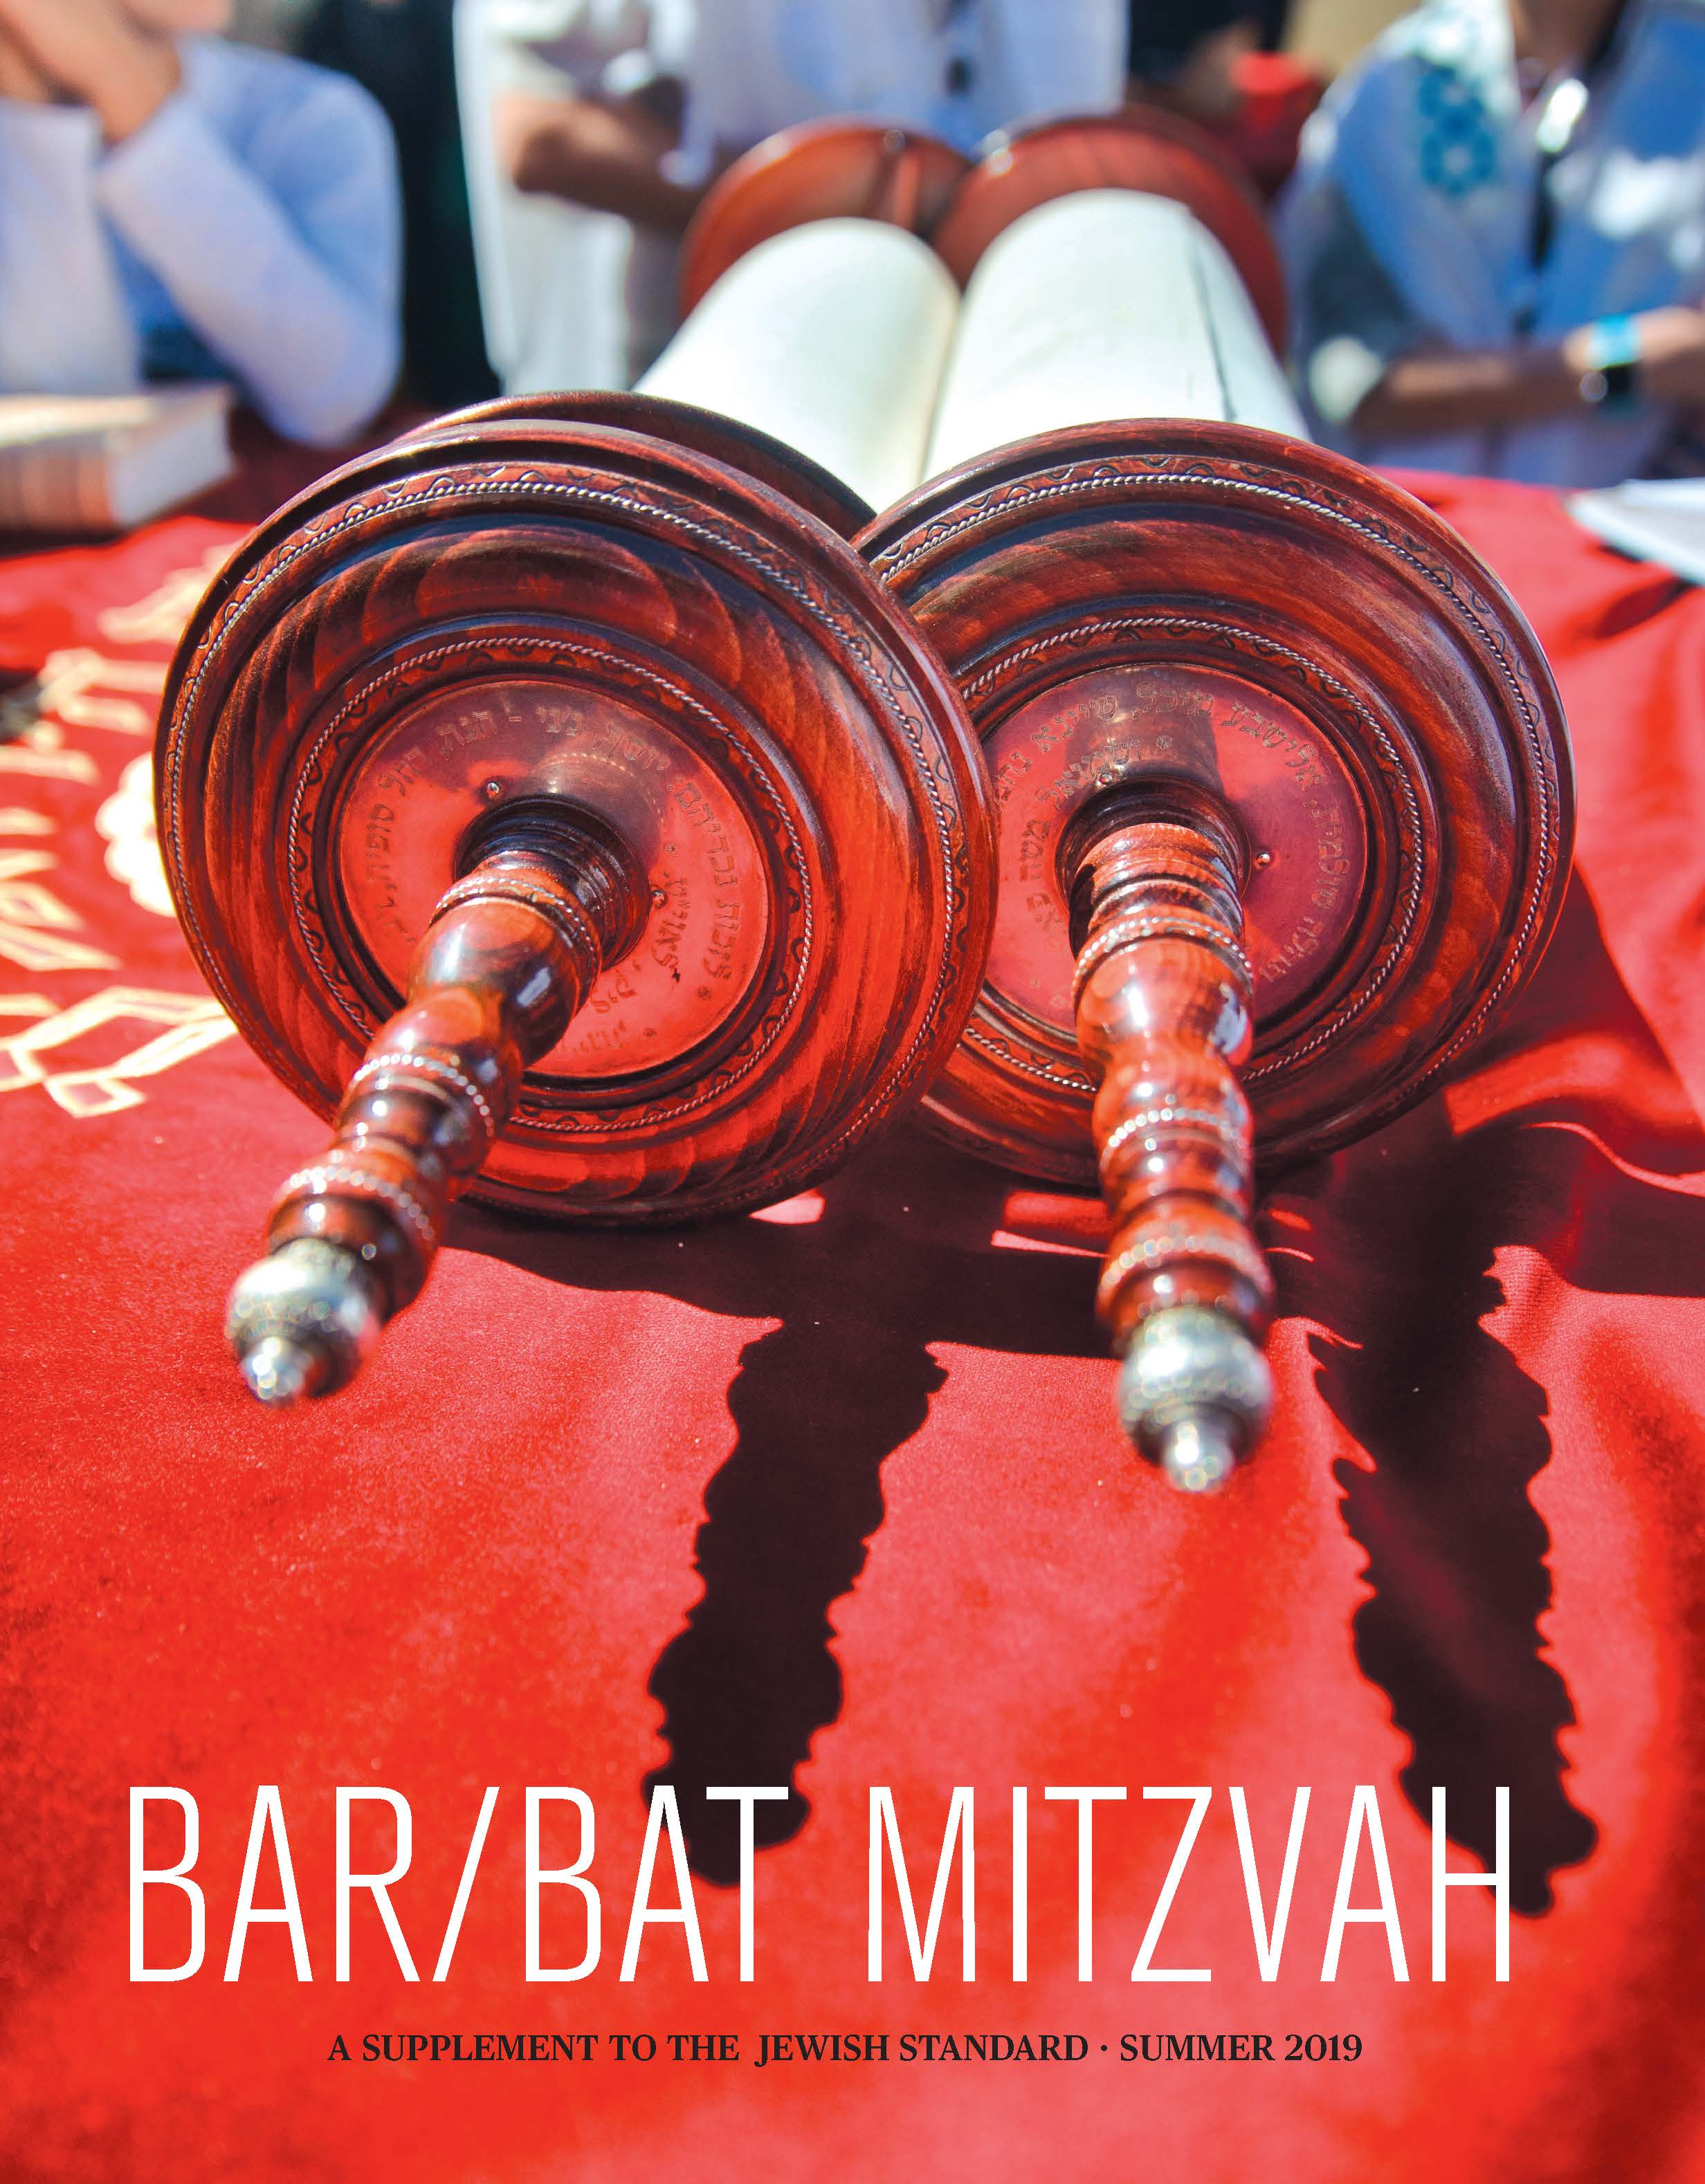 Bar/Bat Mitzvah, Summer 2019